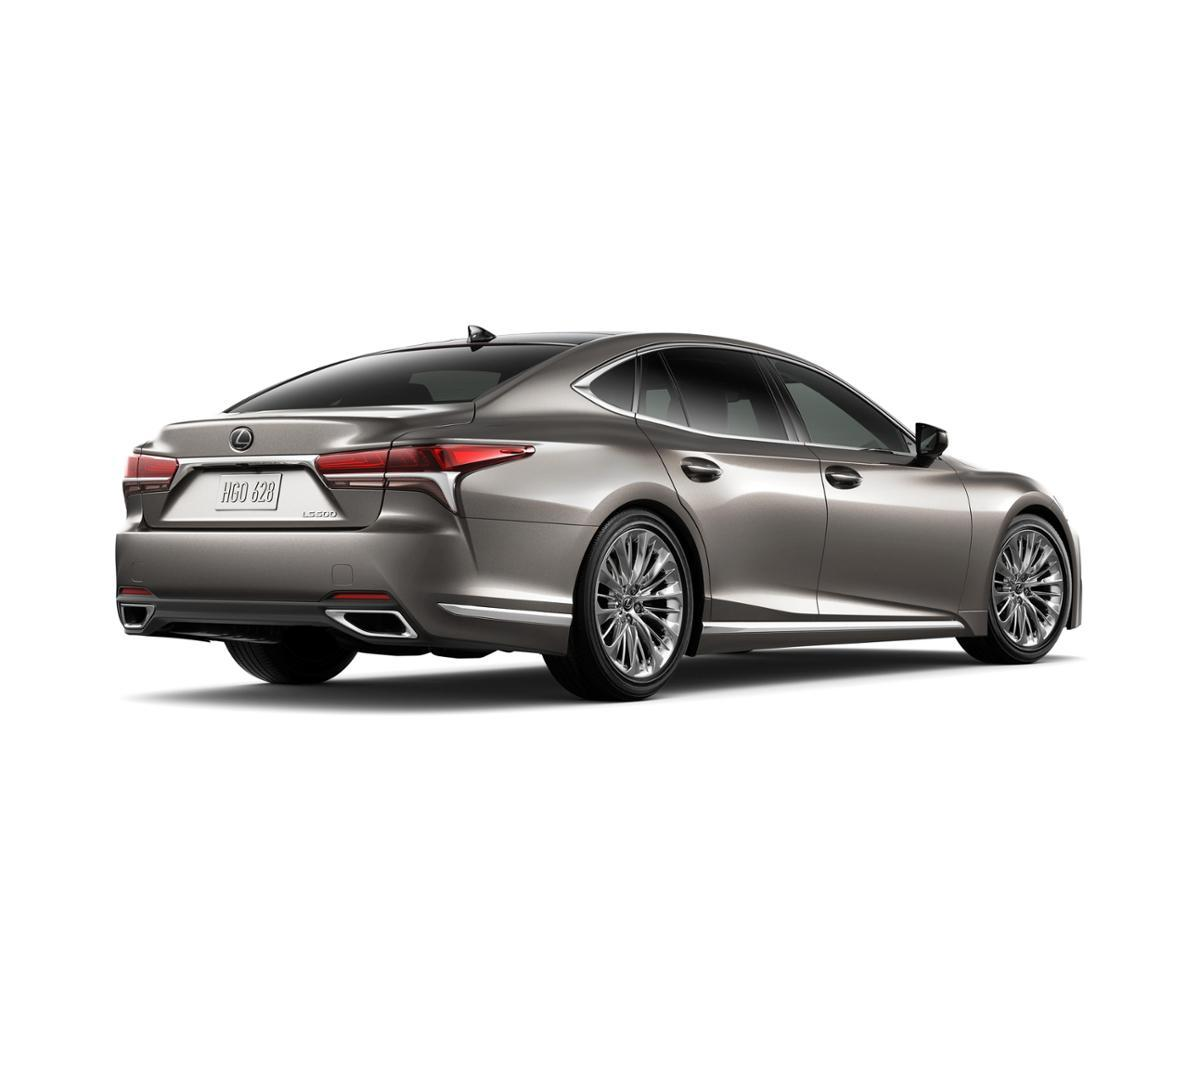 New Atomic Silver 2019 Lexus LS 500 In Clearwater, FL